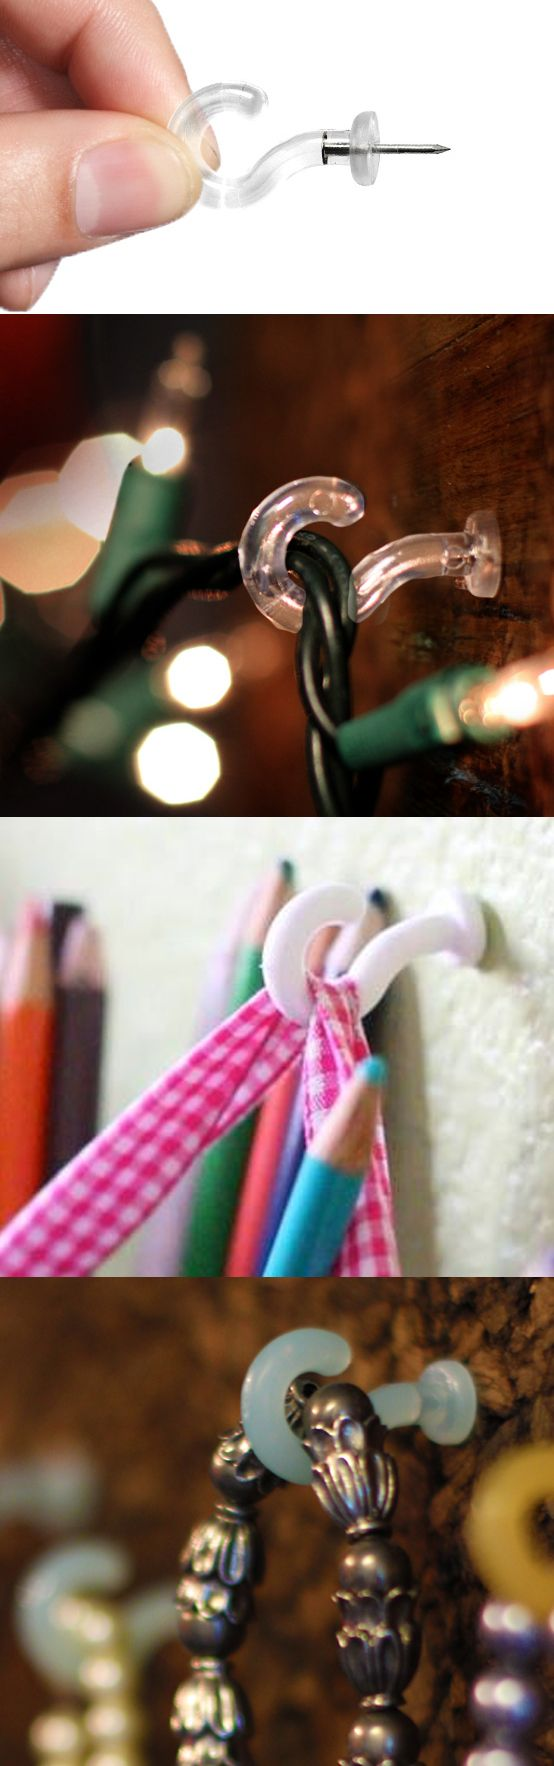 Why didn't I think of that?! :) Easy little wall hook. No nails, staples or tape. www.pinhooks.com